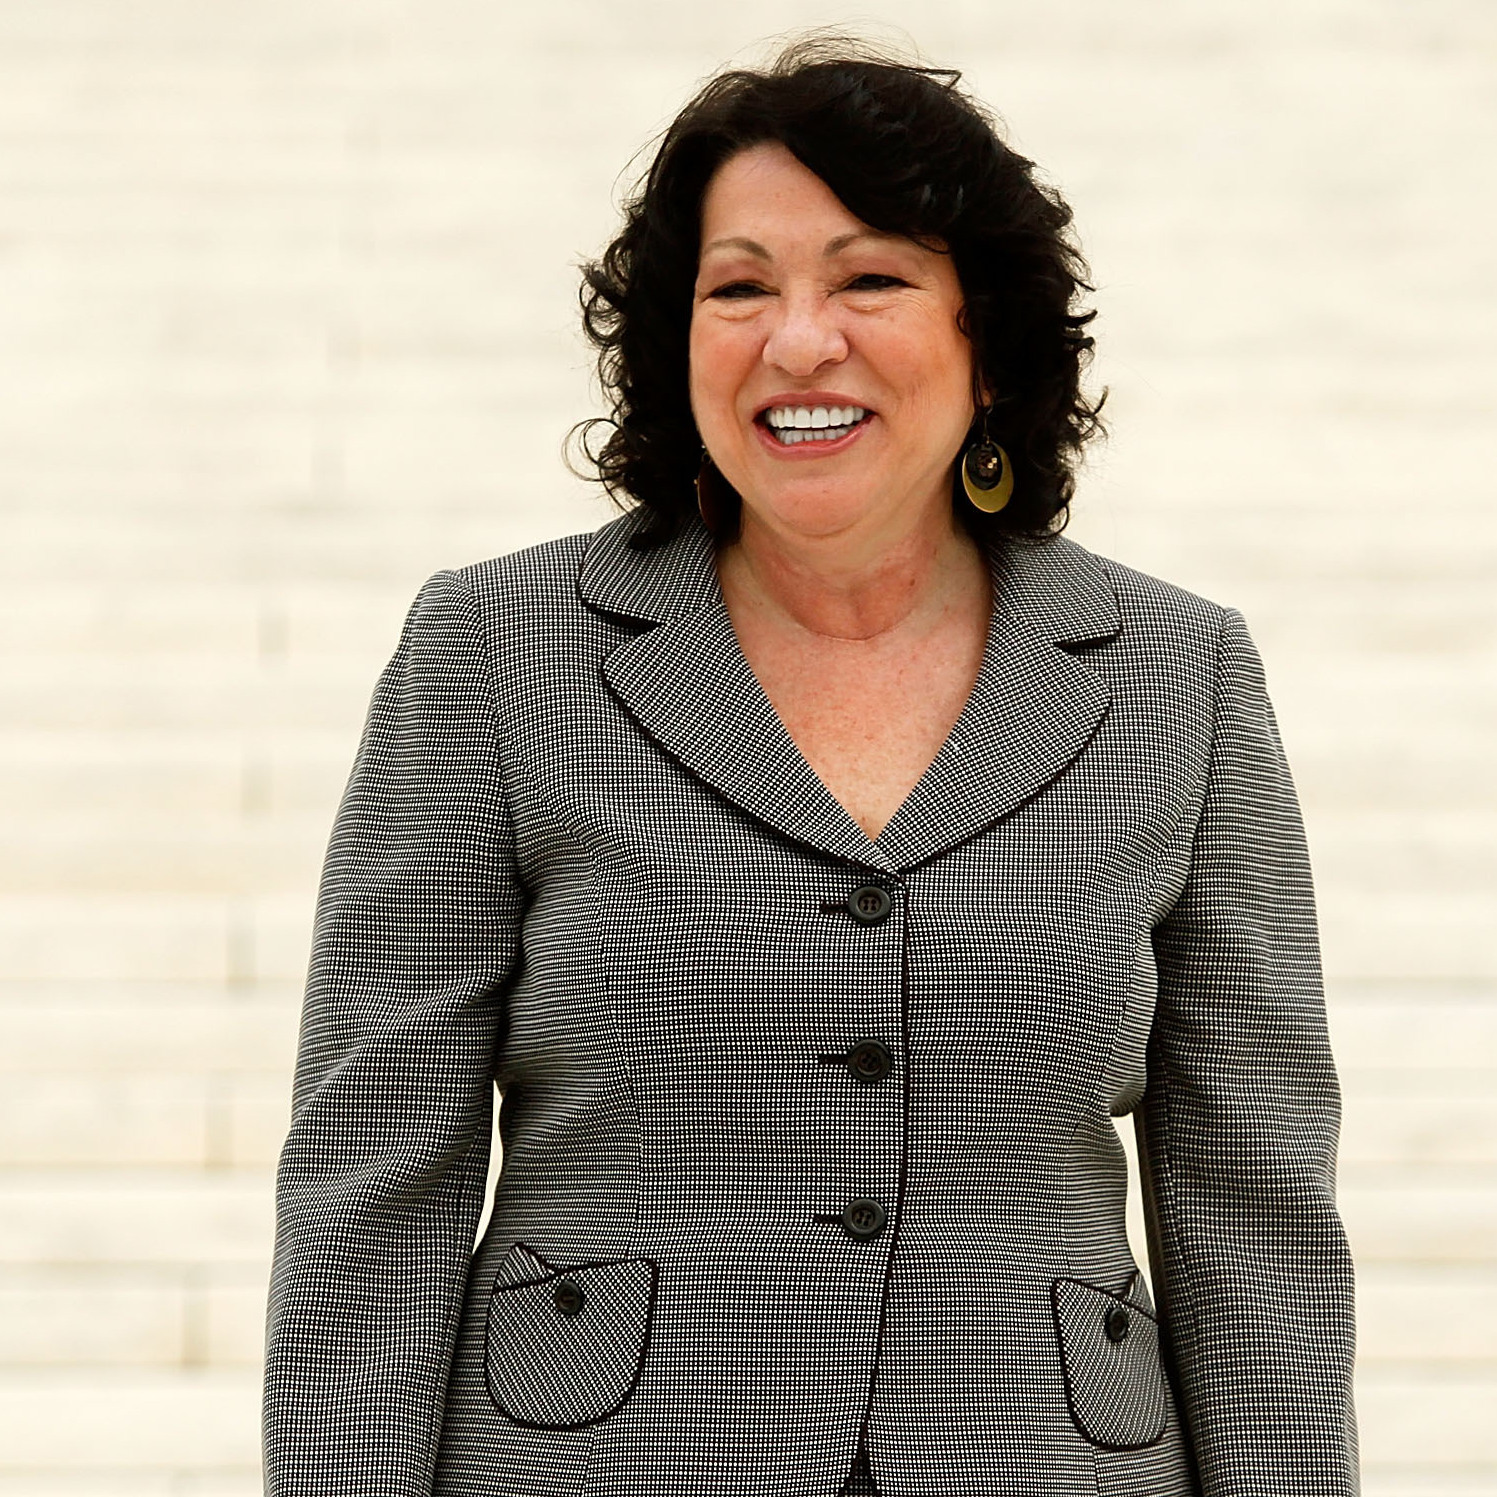 Sonia Sotomayor is a U.S. Supreme Court Justice. Her memoir, My Beloved World, is being released simultaneously in English and in Spanish.